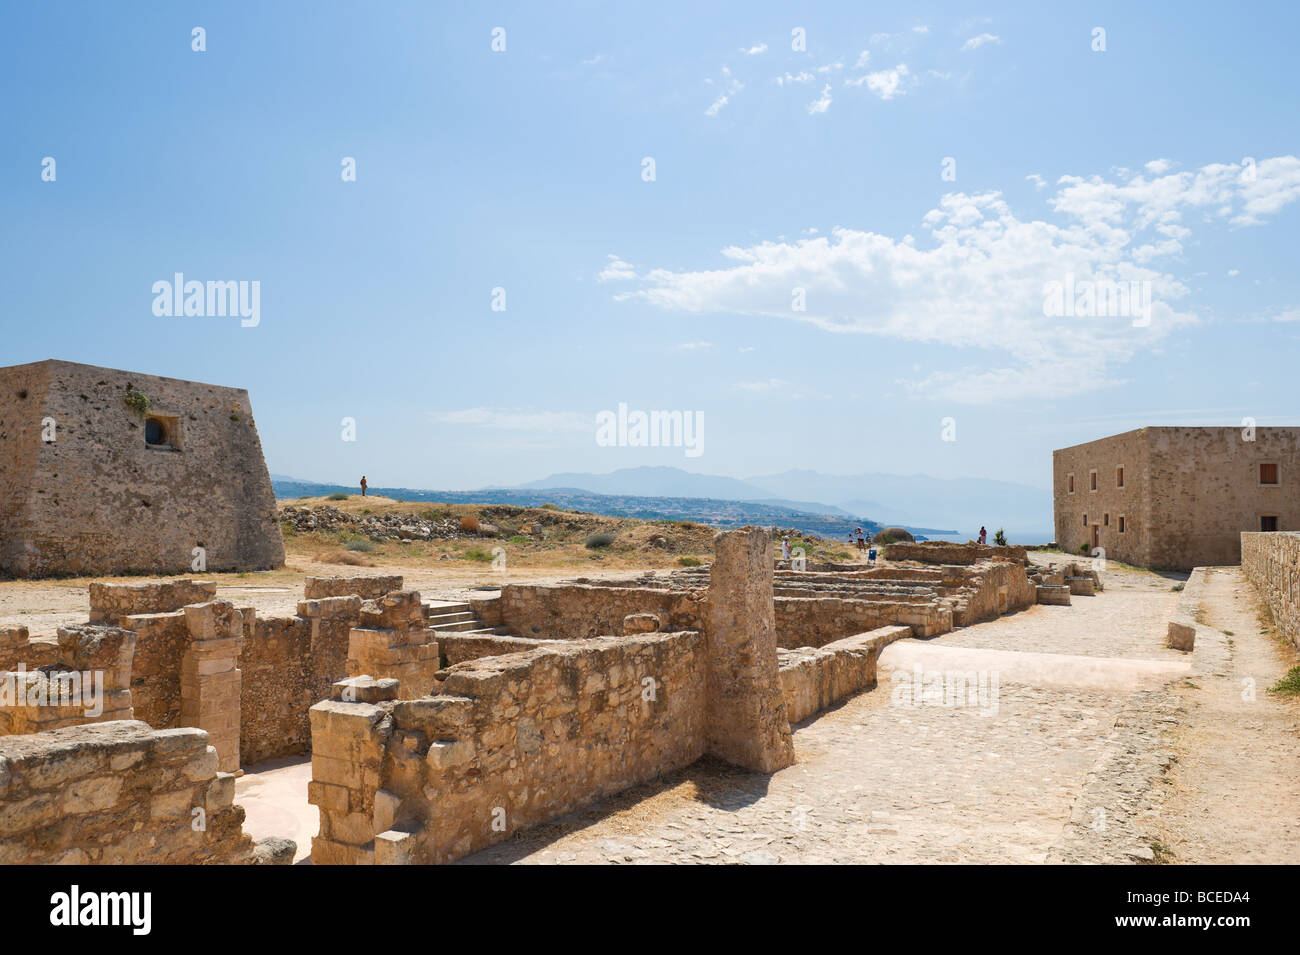 The Councillor's and Rector's Residences in the 16th Century Venetian Fortezza (Fortress), Rethymnon, Crete, Greece Stock Photo